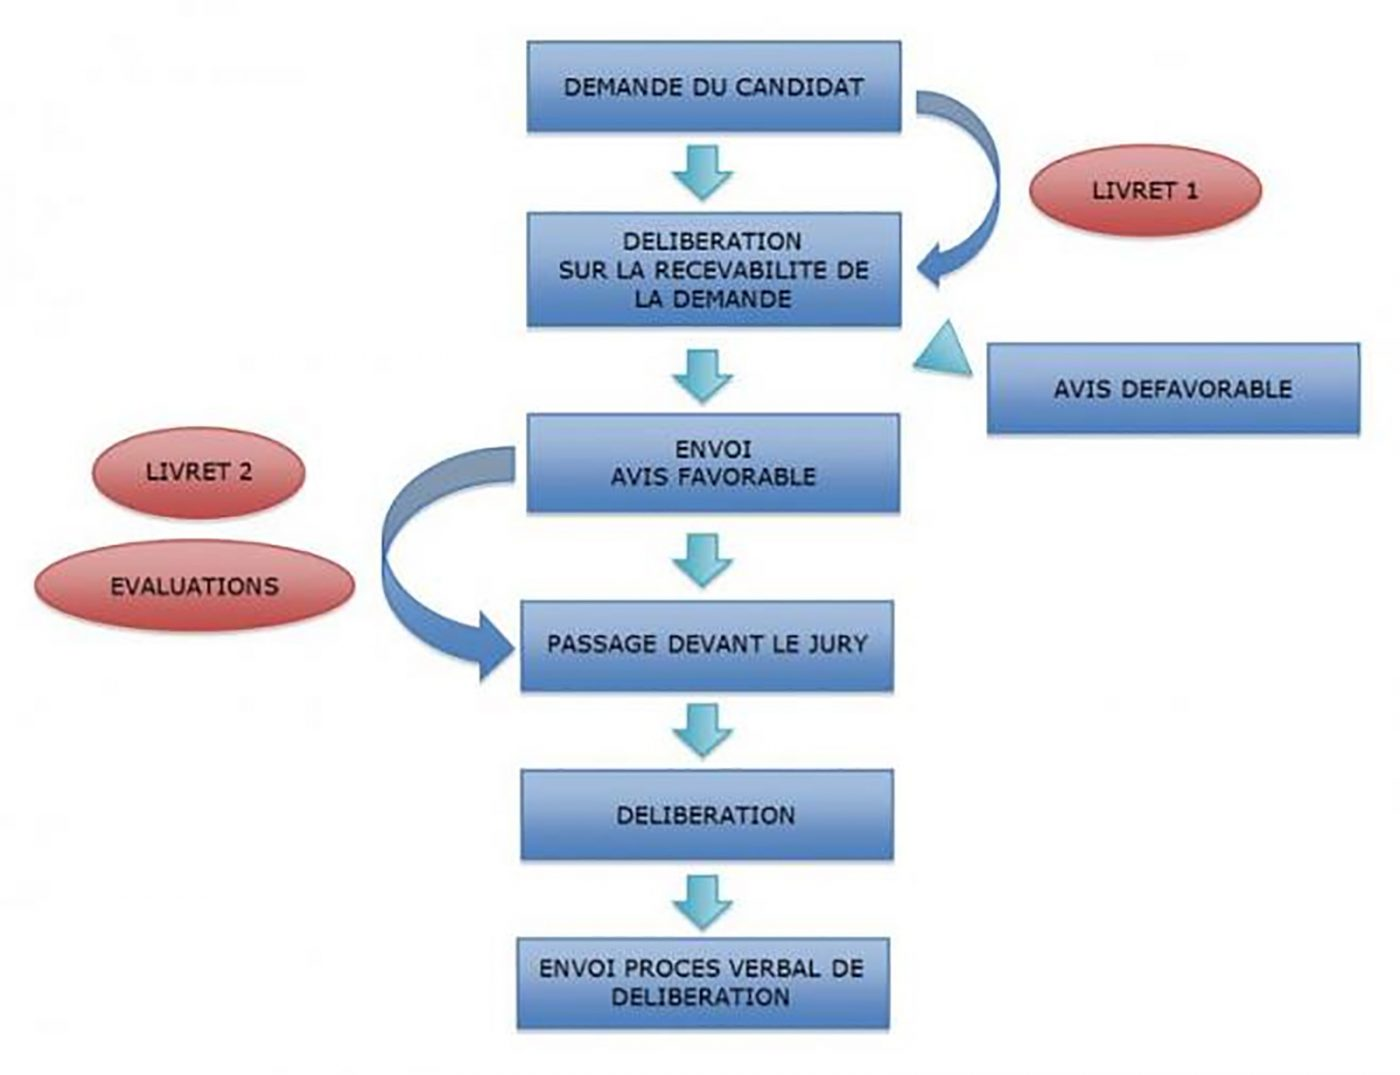 VAE immobilier diagnostic